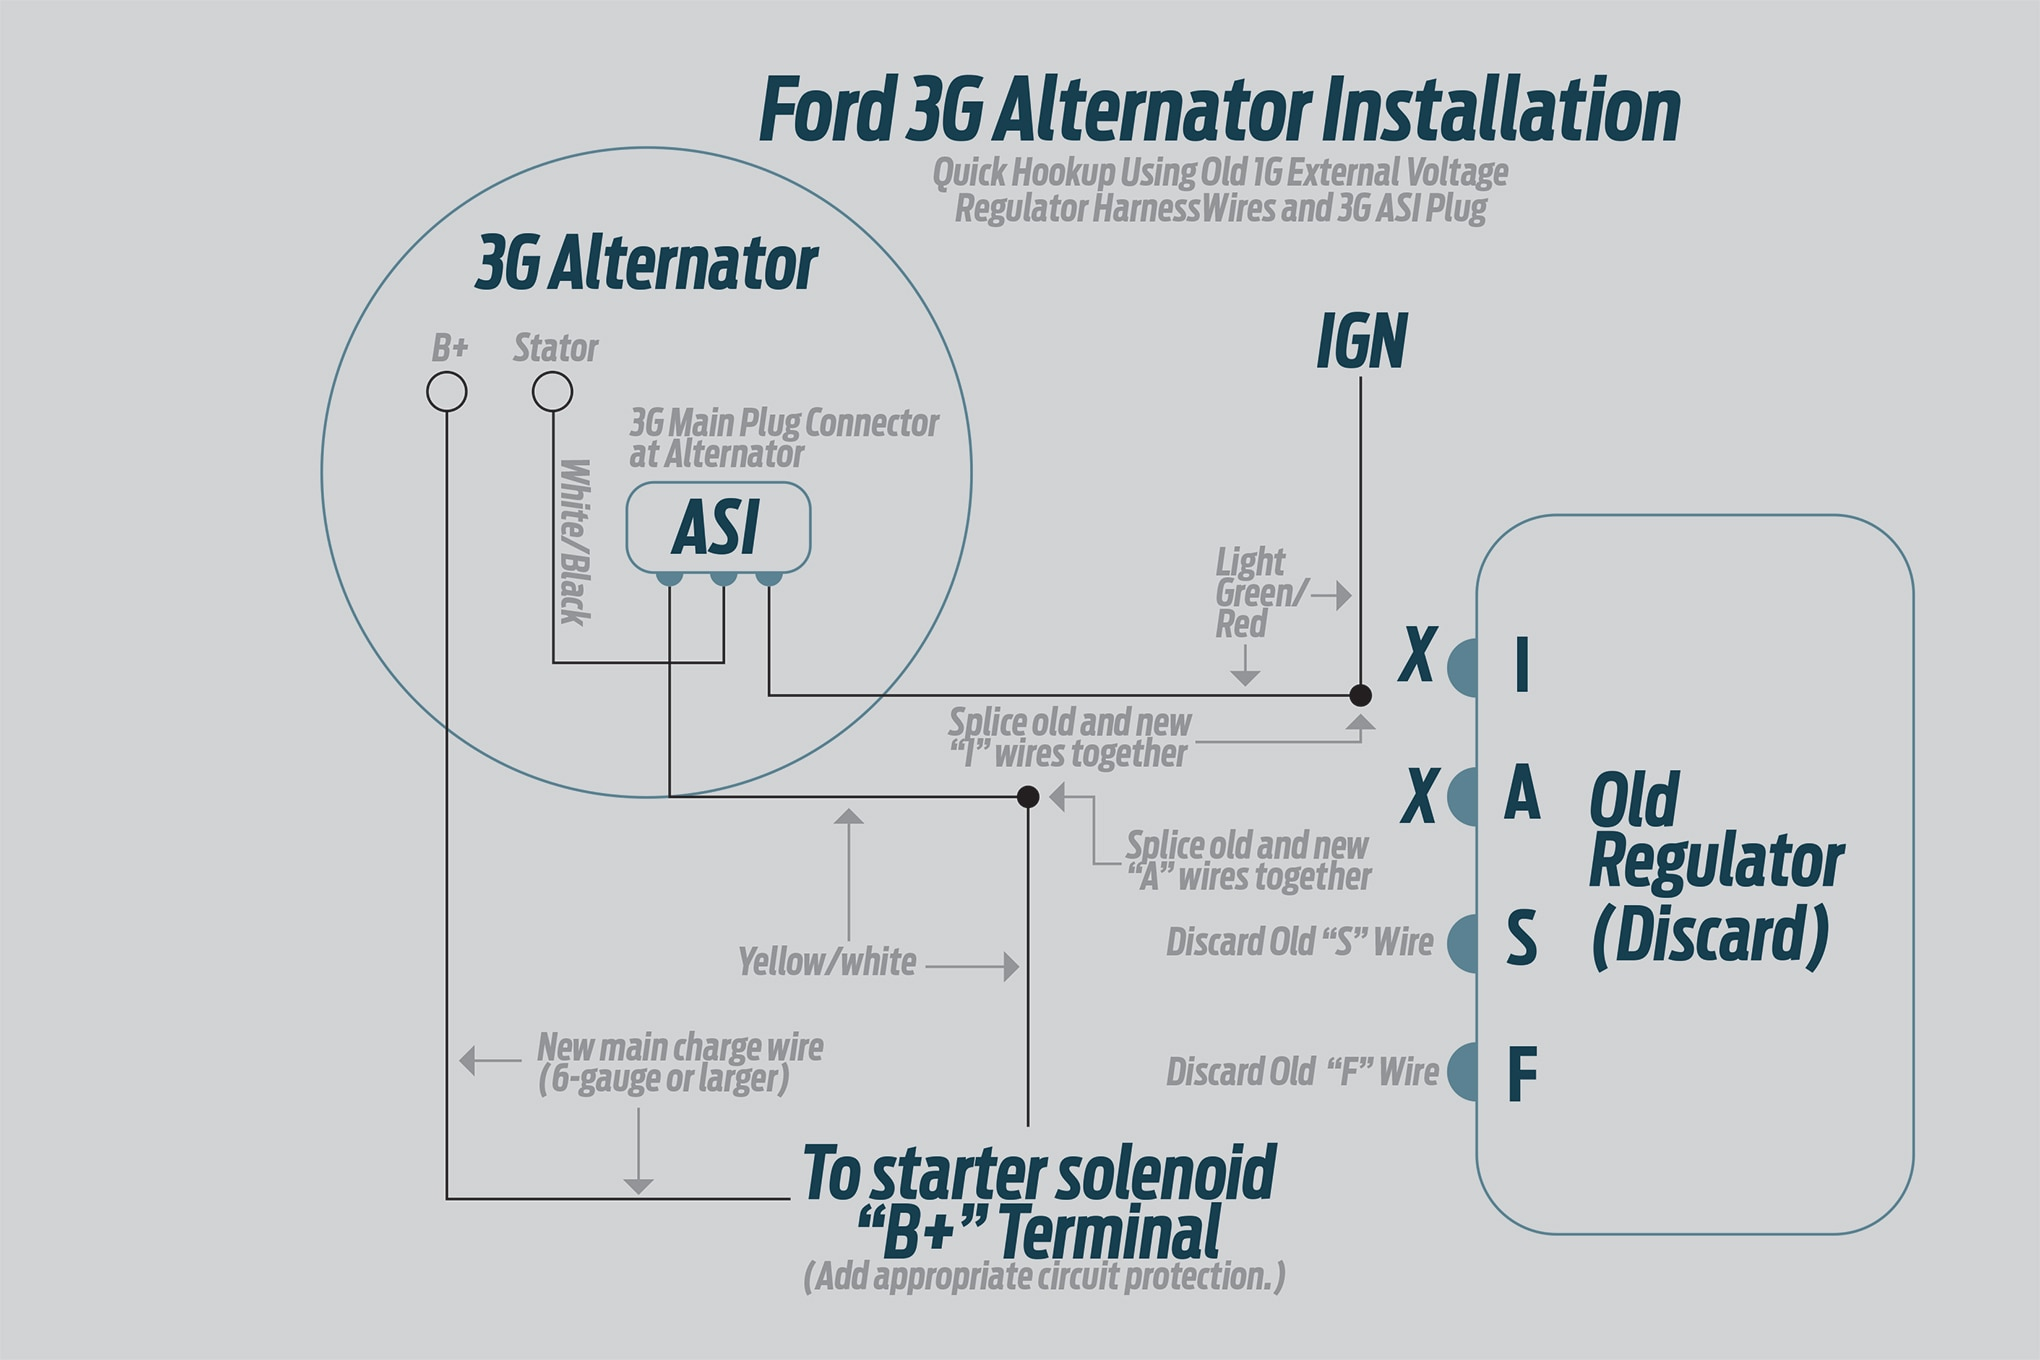 hight resolution of how to install a high output ford 3g alternator into older fordsford 1g alternator wiring